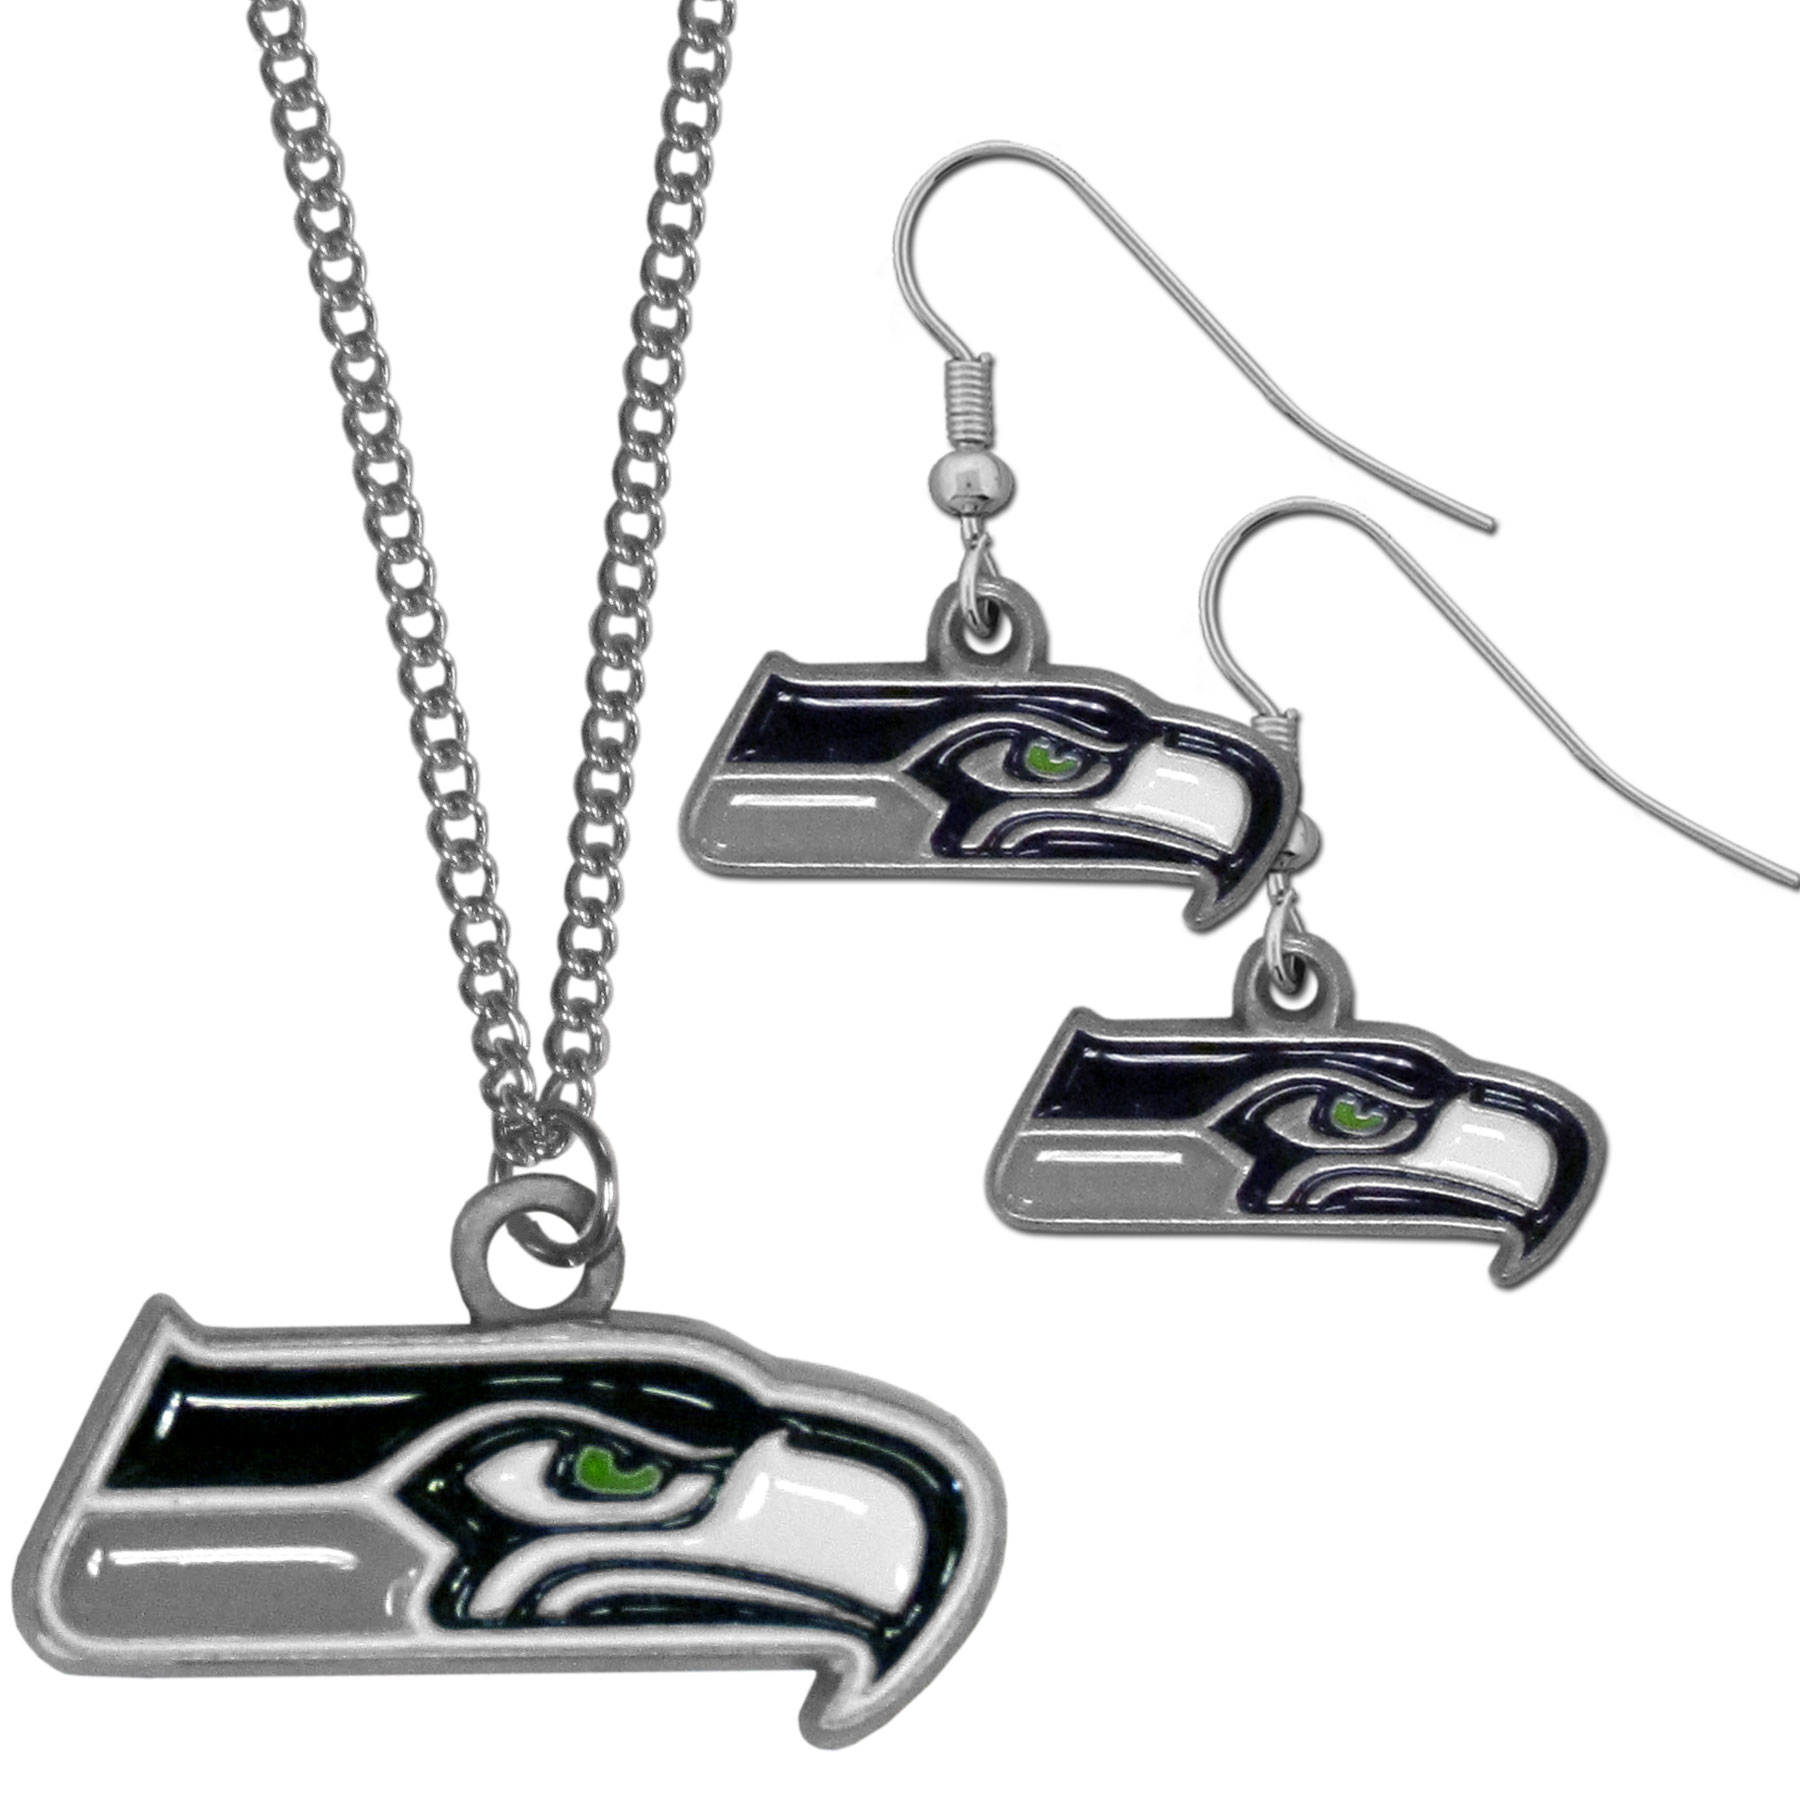 Seattle Seahawks Dangle Earrings and Chain Necklace Set - This classic jewelry set contains are most popular Seattle Seahawks dangle earrings and 22 inch chain necklace. The trendy, dangle earrings are lightweight and feature a fully cast metal team charm with enameled team colors. The matching necklace completes this fashion forward combo and is a spirited set that is perfect for game day but nice enough for everyday.